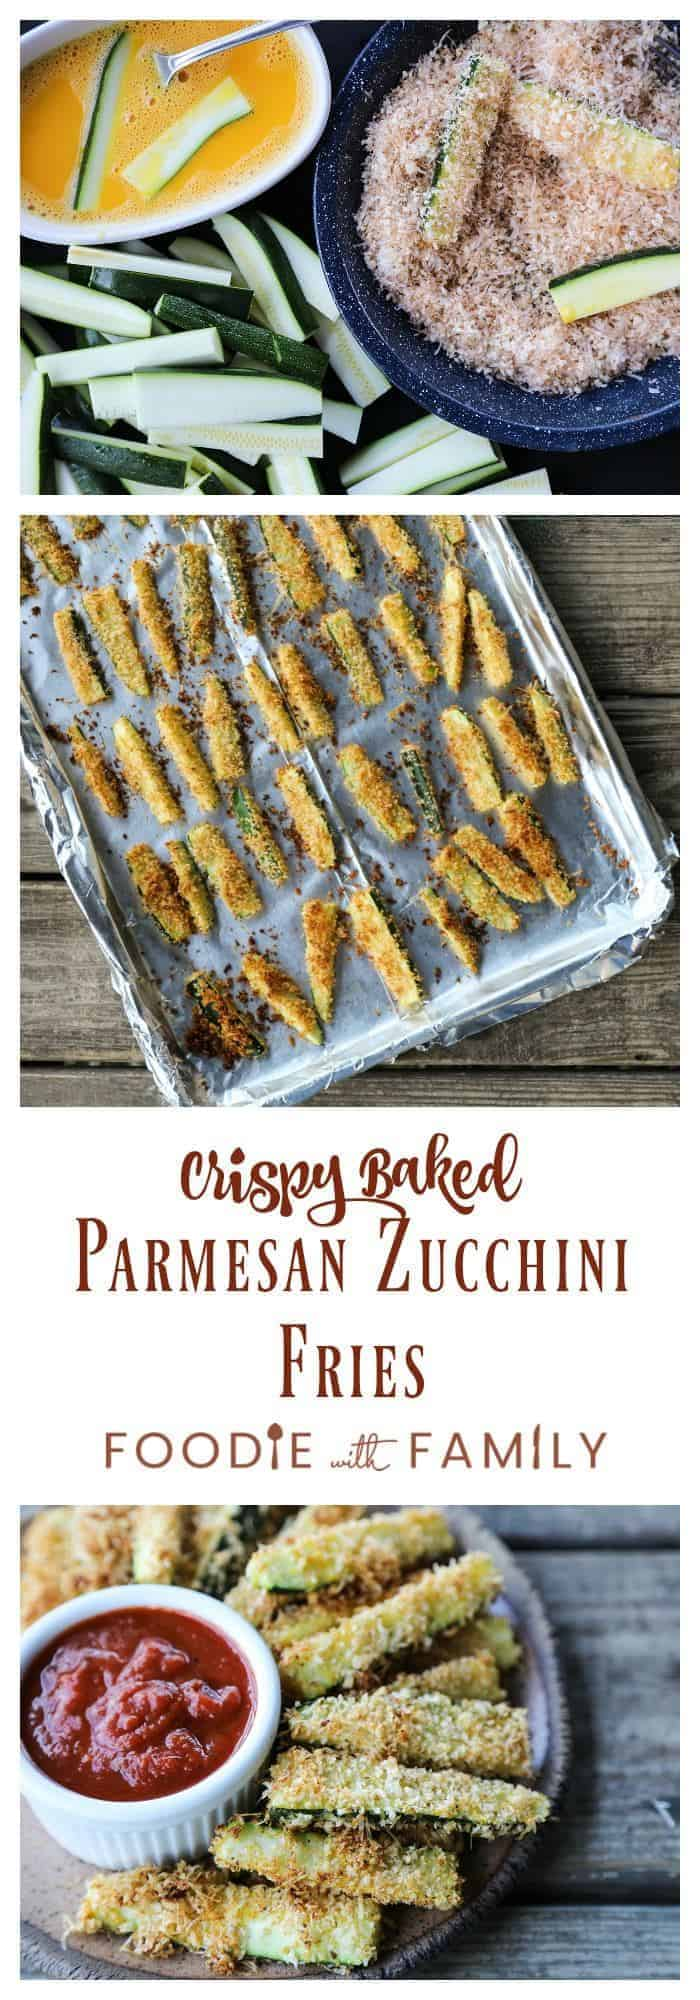 Crispy, crunchy, and absoluely habit-forming in the best possible way; Crispy Baked Parmesan Zucchini Fries.